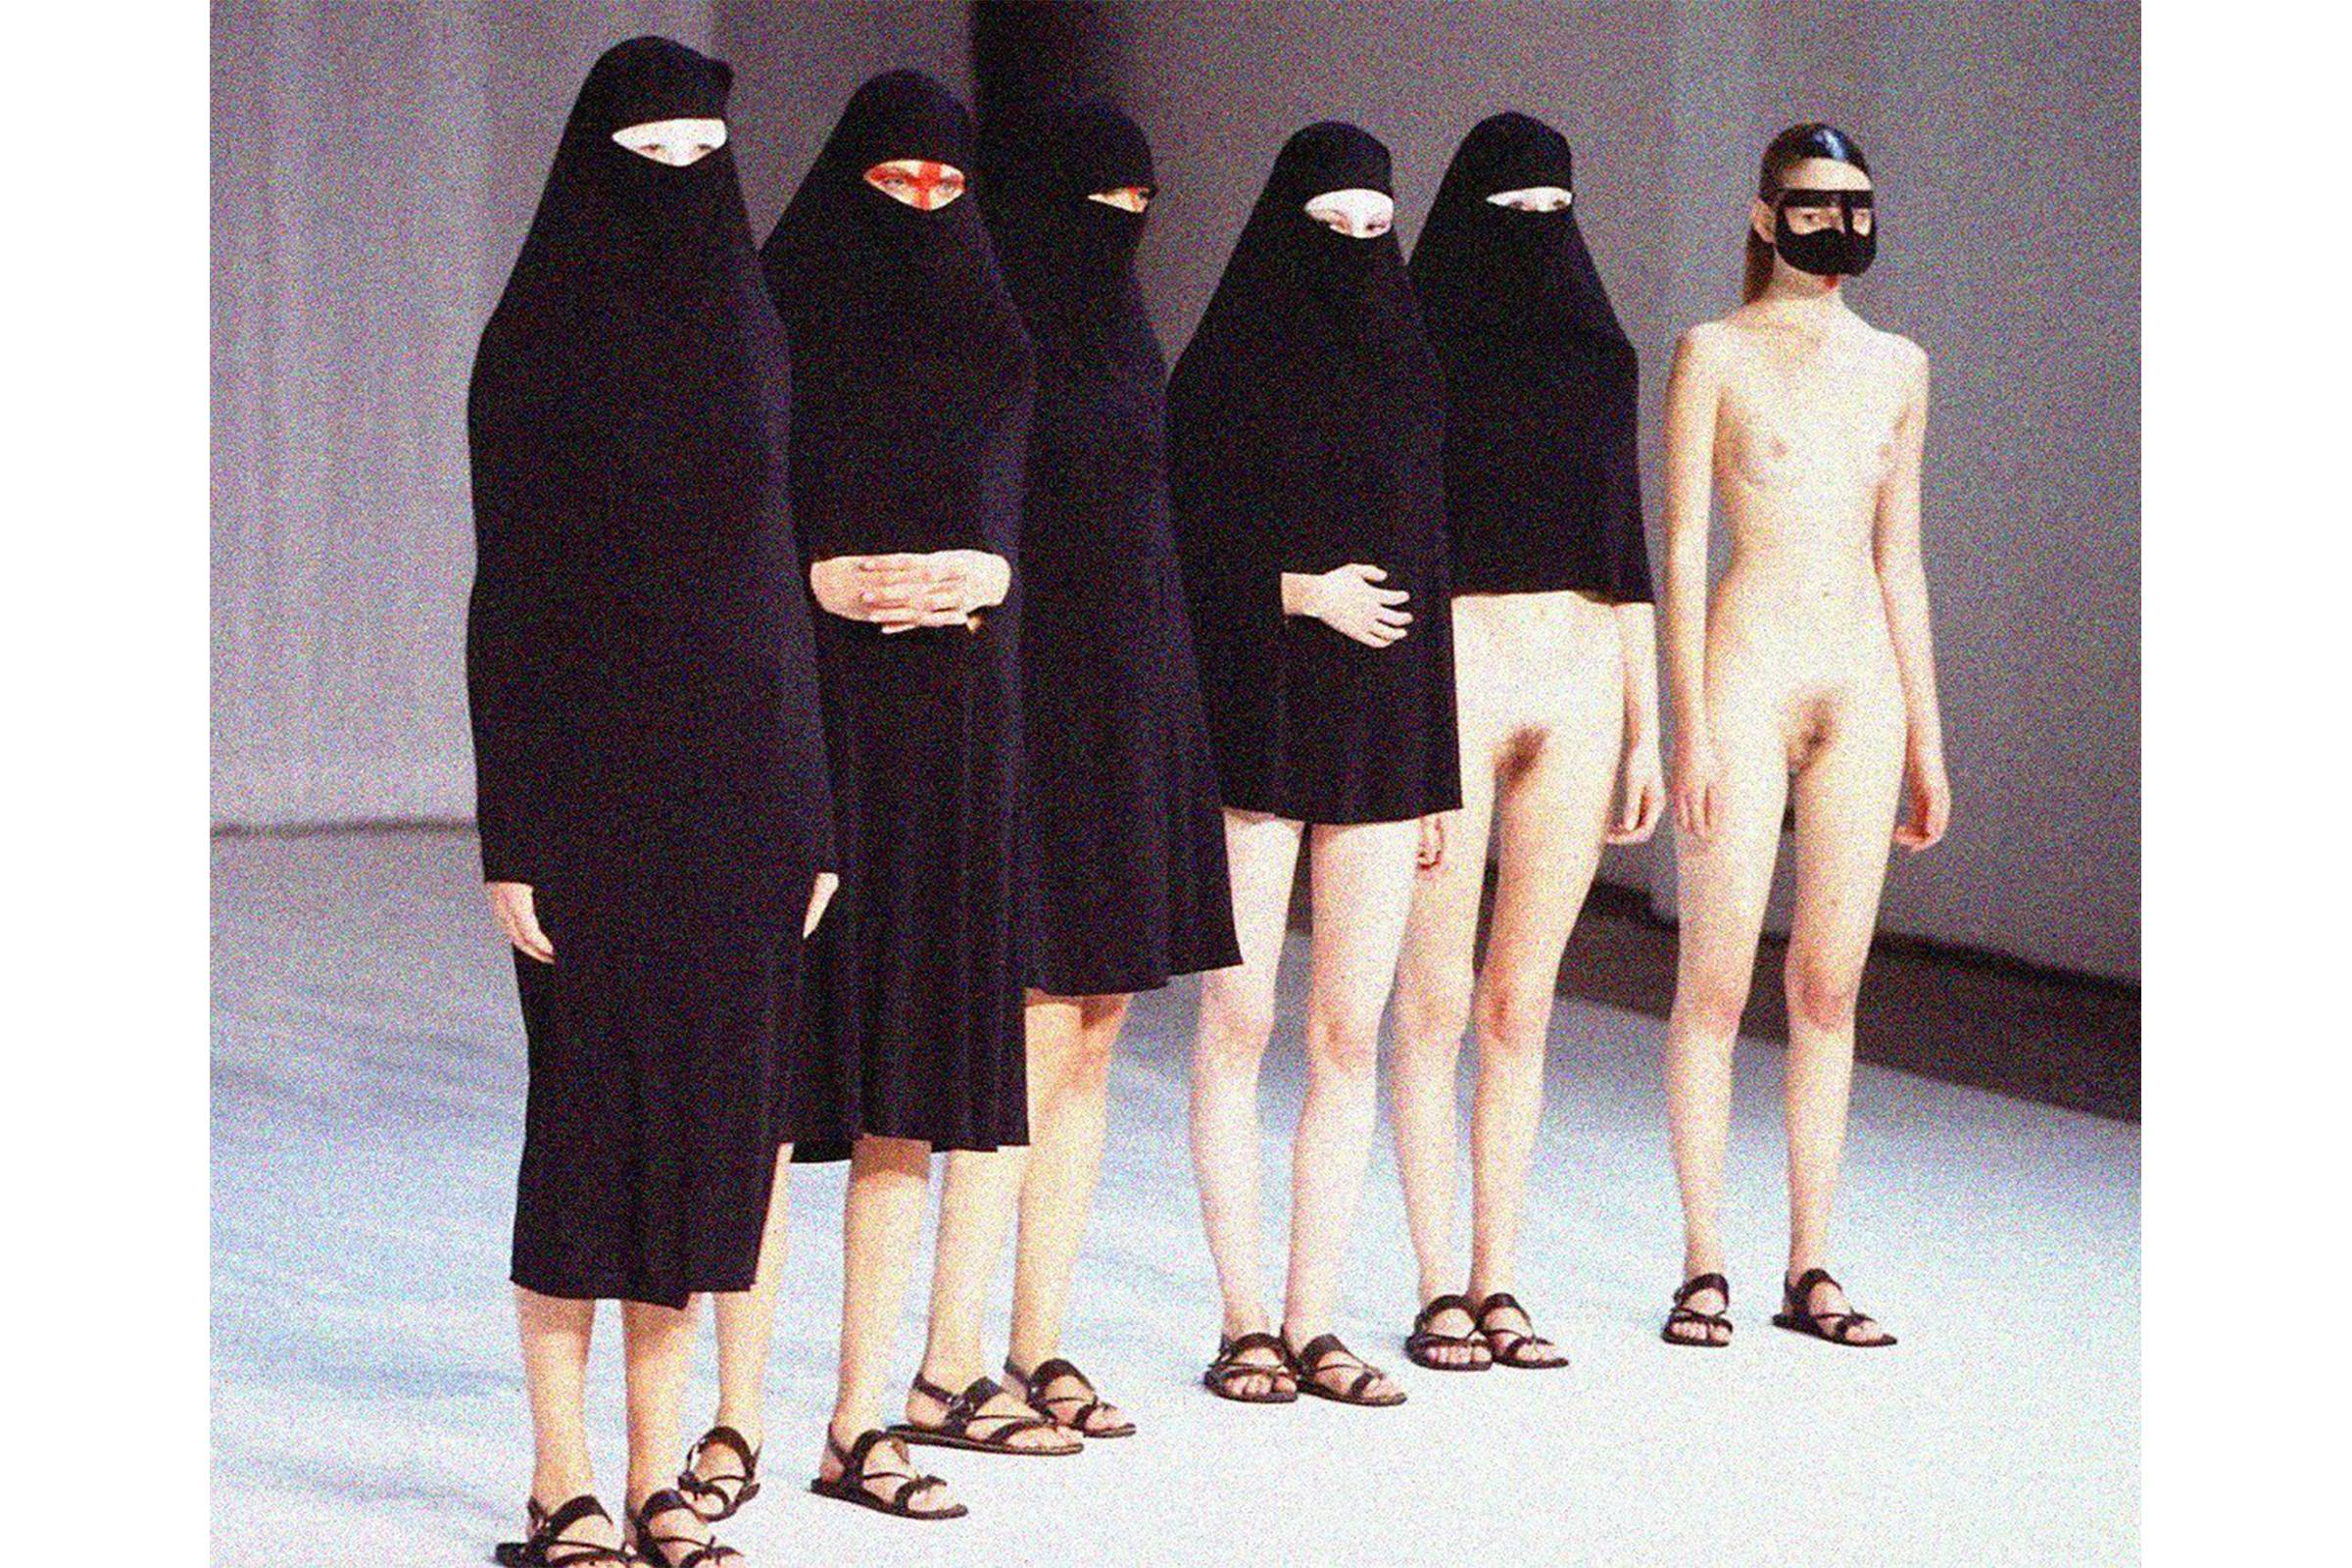 from Hussein Chalayan's 'Burka' show in 1996